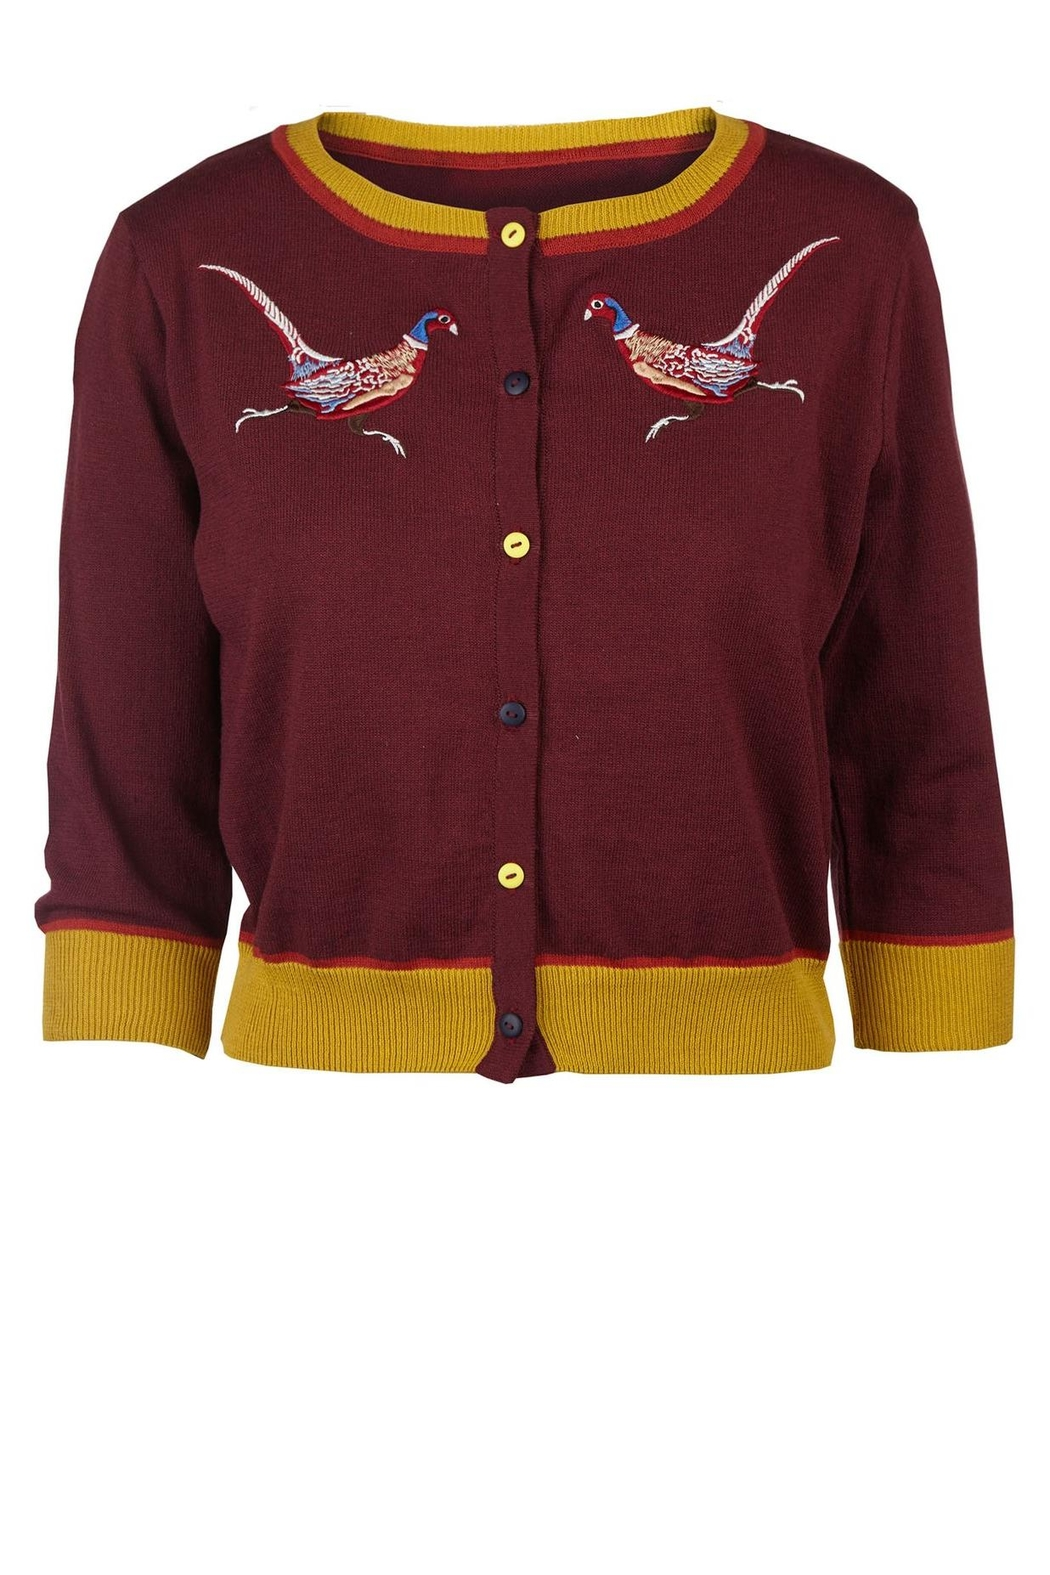 43f16757849 Palava Plum Pheasant Cardigan from New York by Pollyanna and Dot ...